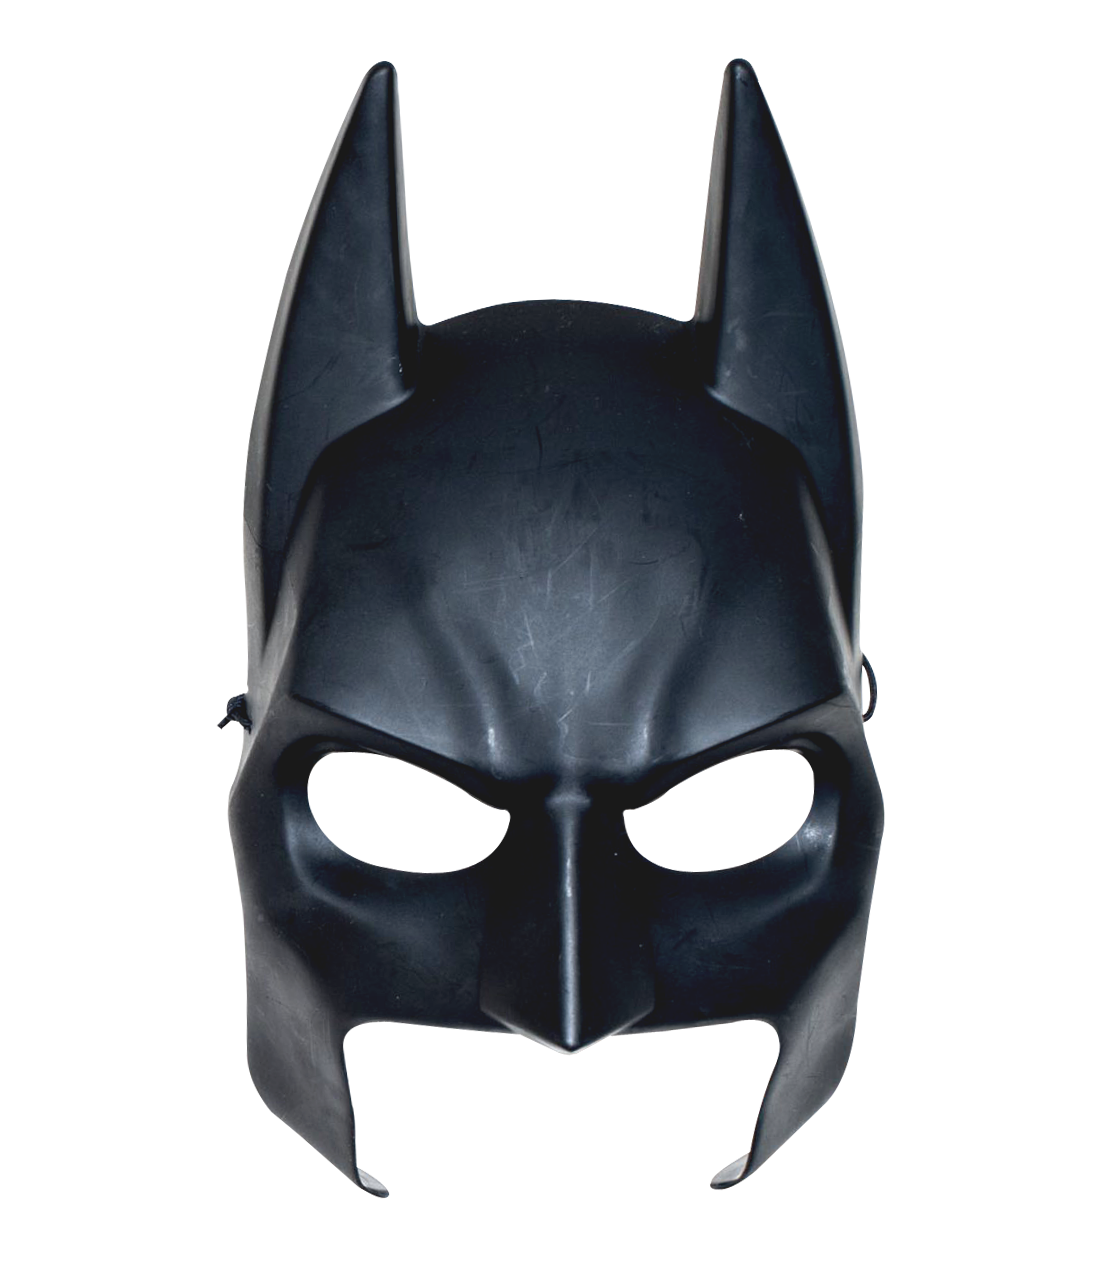 PNG Mask - 46393